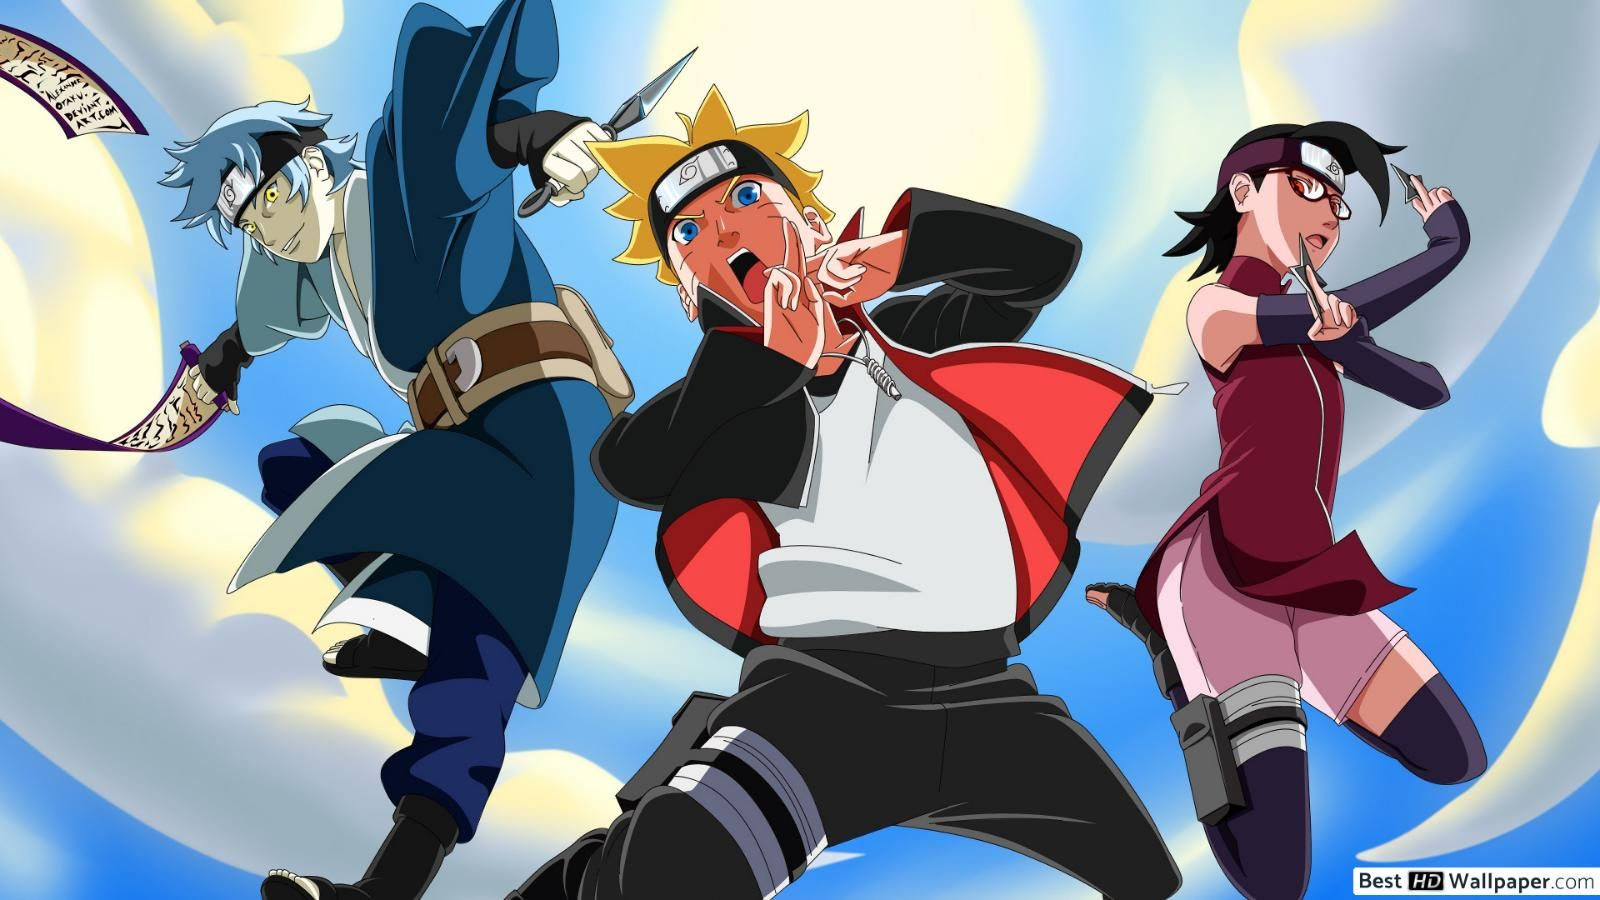 Boruto Episode 155 All The Details That You Need To Know In 2020 Boruto Boruto Episodes Naruto The Movie